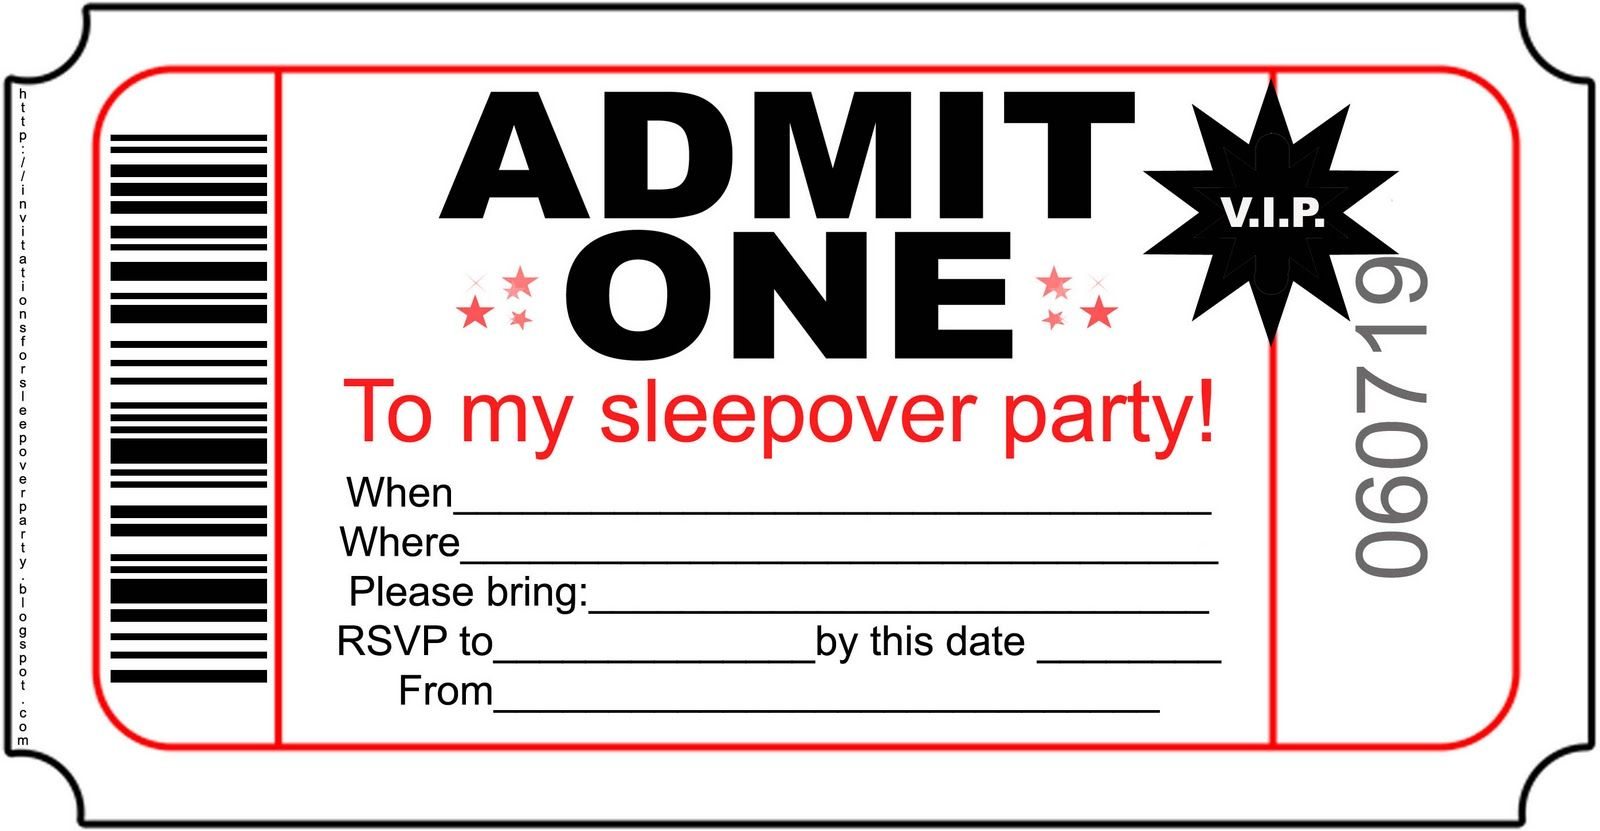 Free Printable Sleepover Invitation Templates | idees | Pinterest ...